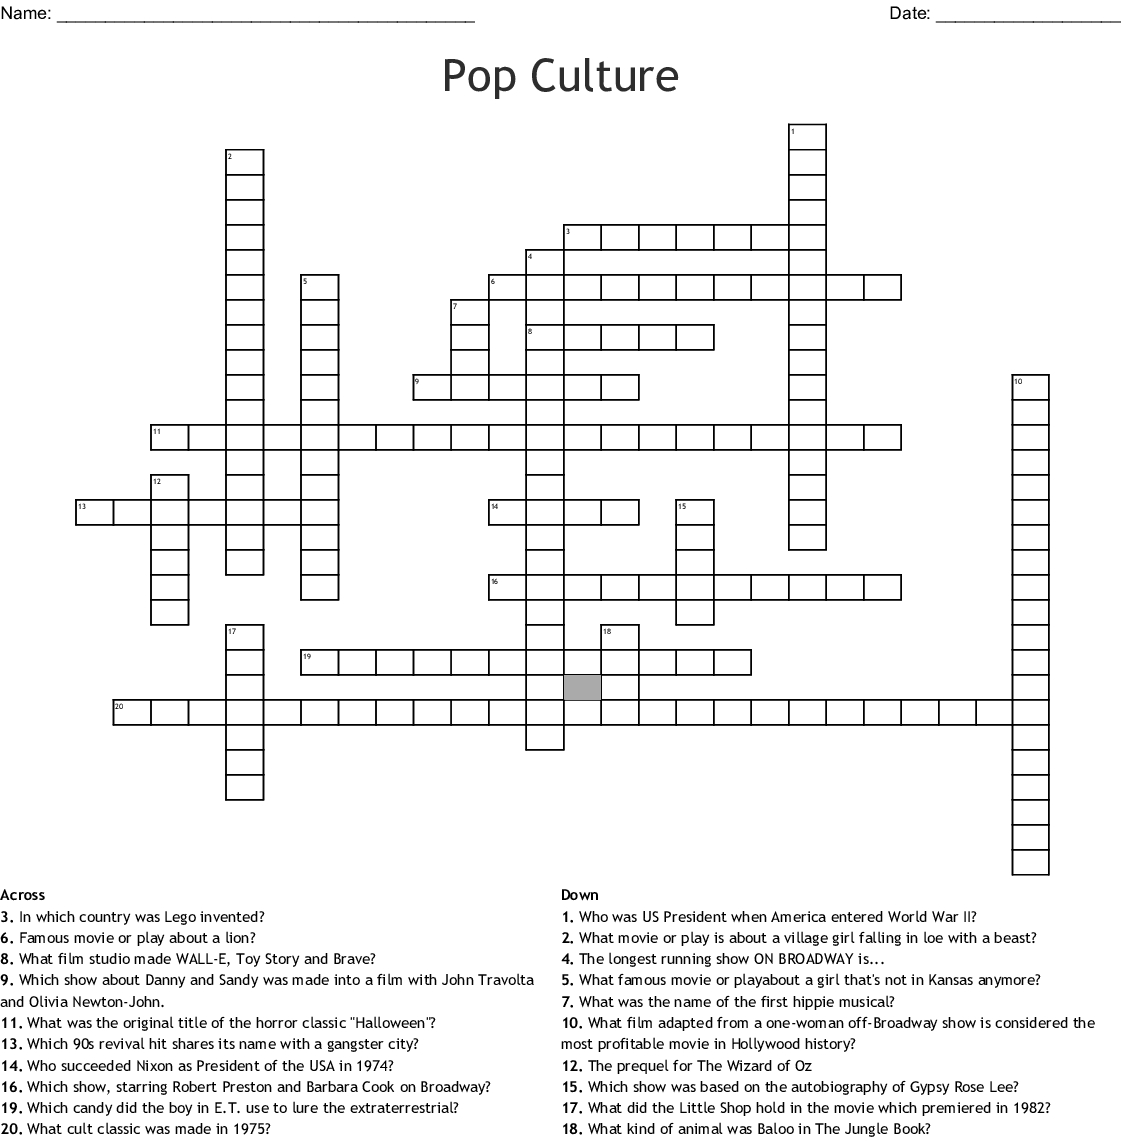 Pop Culture Crossword - Wordmint - Pop Culture Crossword Puzzles Printable